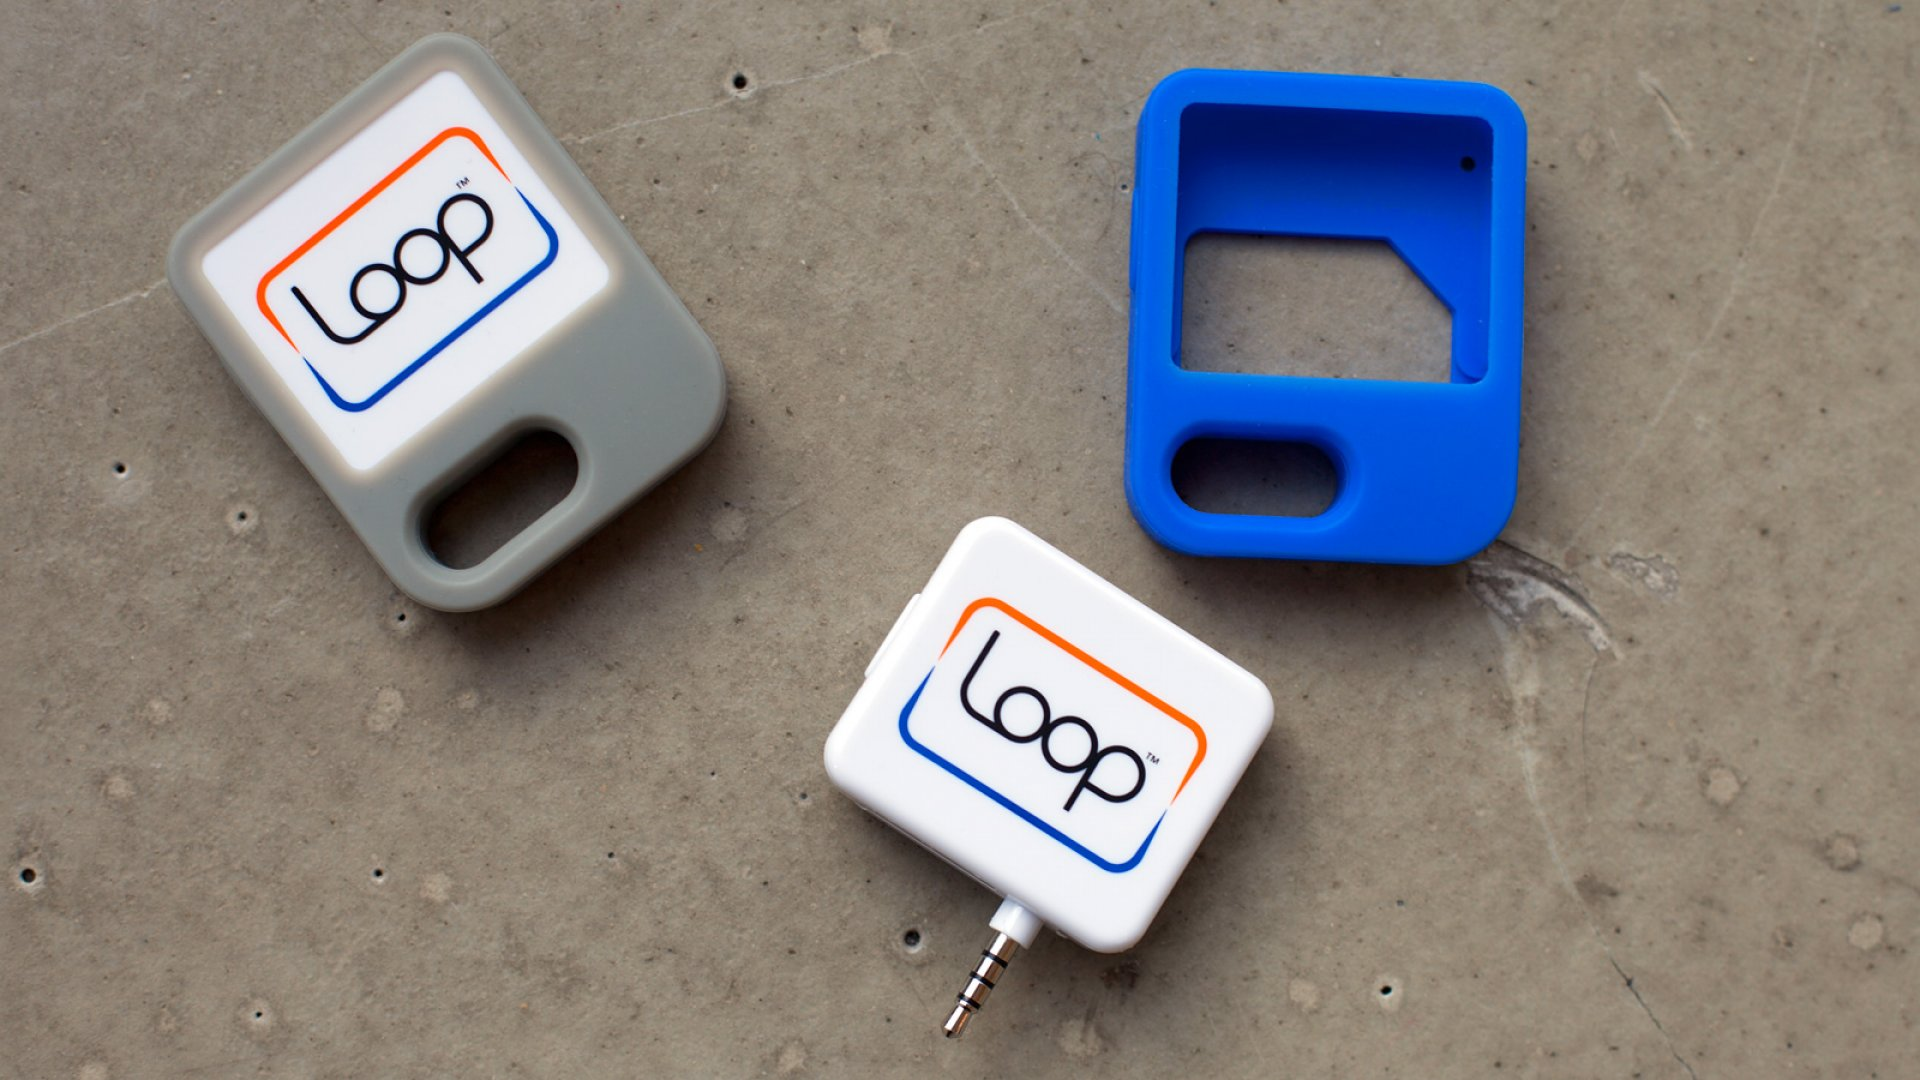 Loop: What the Future of Payments Looks Like